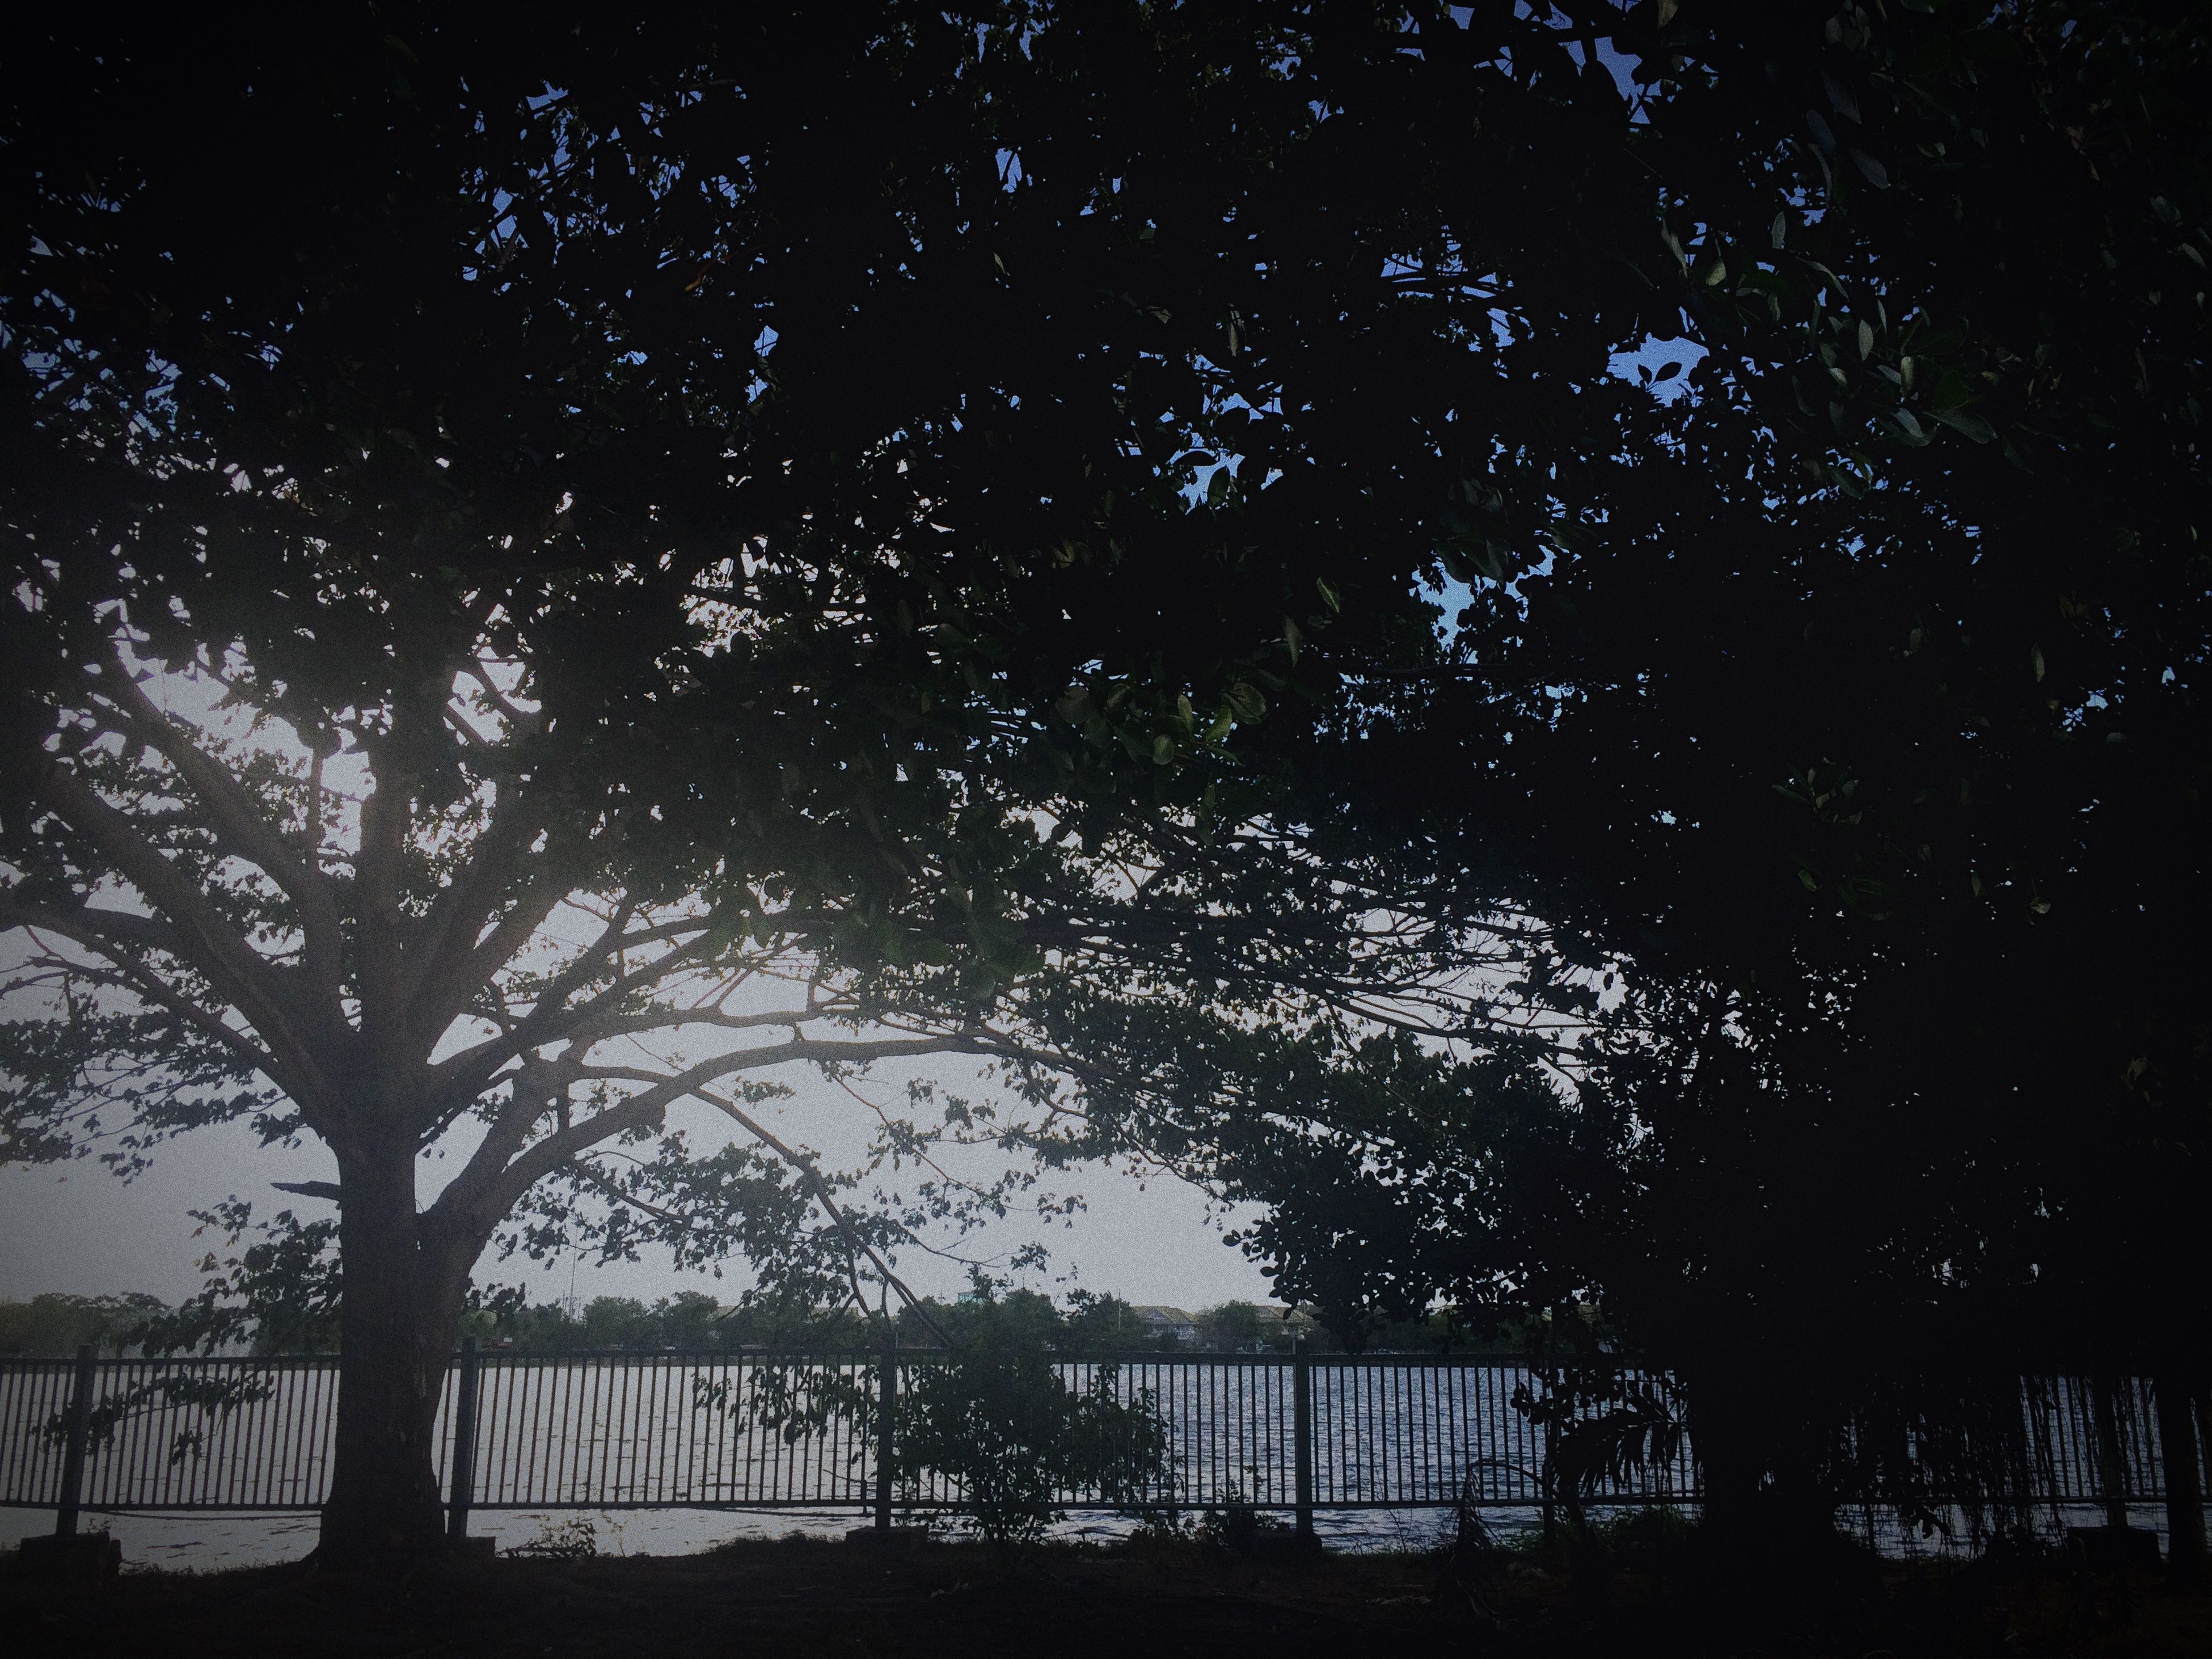 tree, silhouette, branch, growth, tranquility, nature, railing, fence, low angle view, beauty in nature, tranquil scene, sky, outdoors, no people, sunlight, scenics, day, shadow, park - man made space